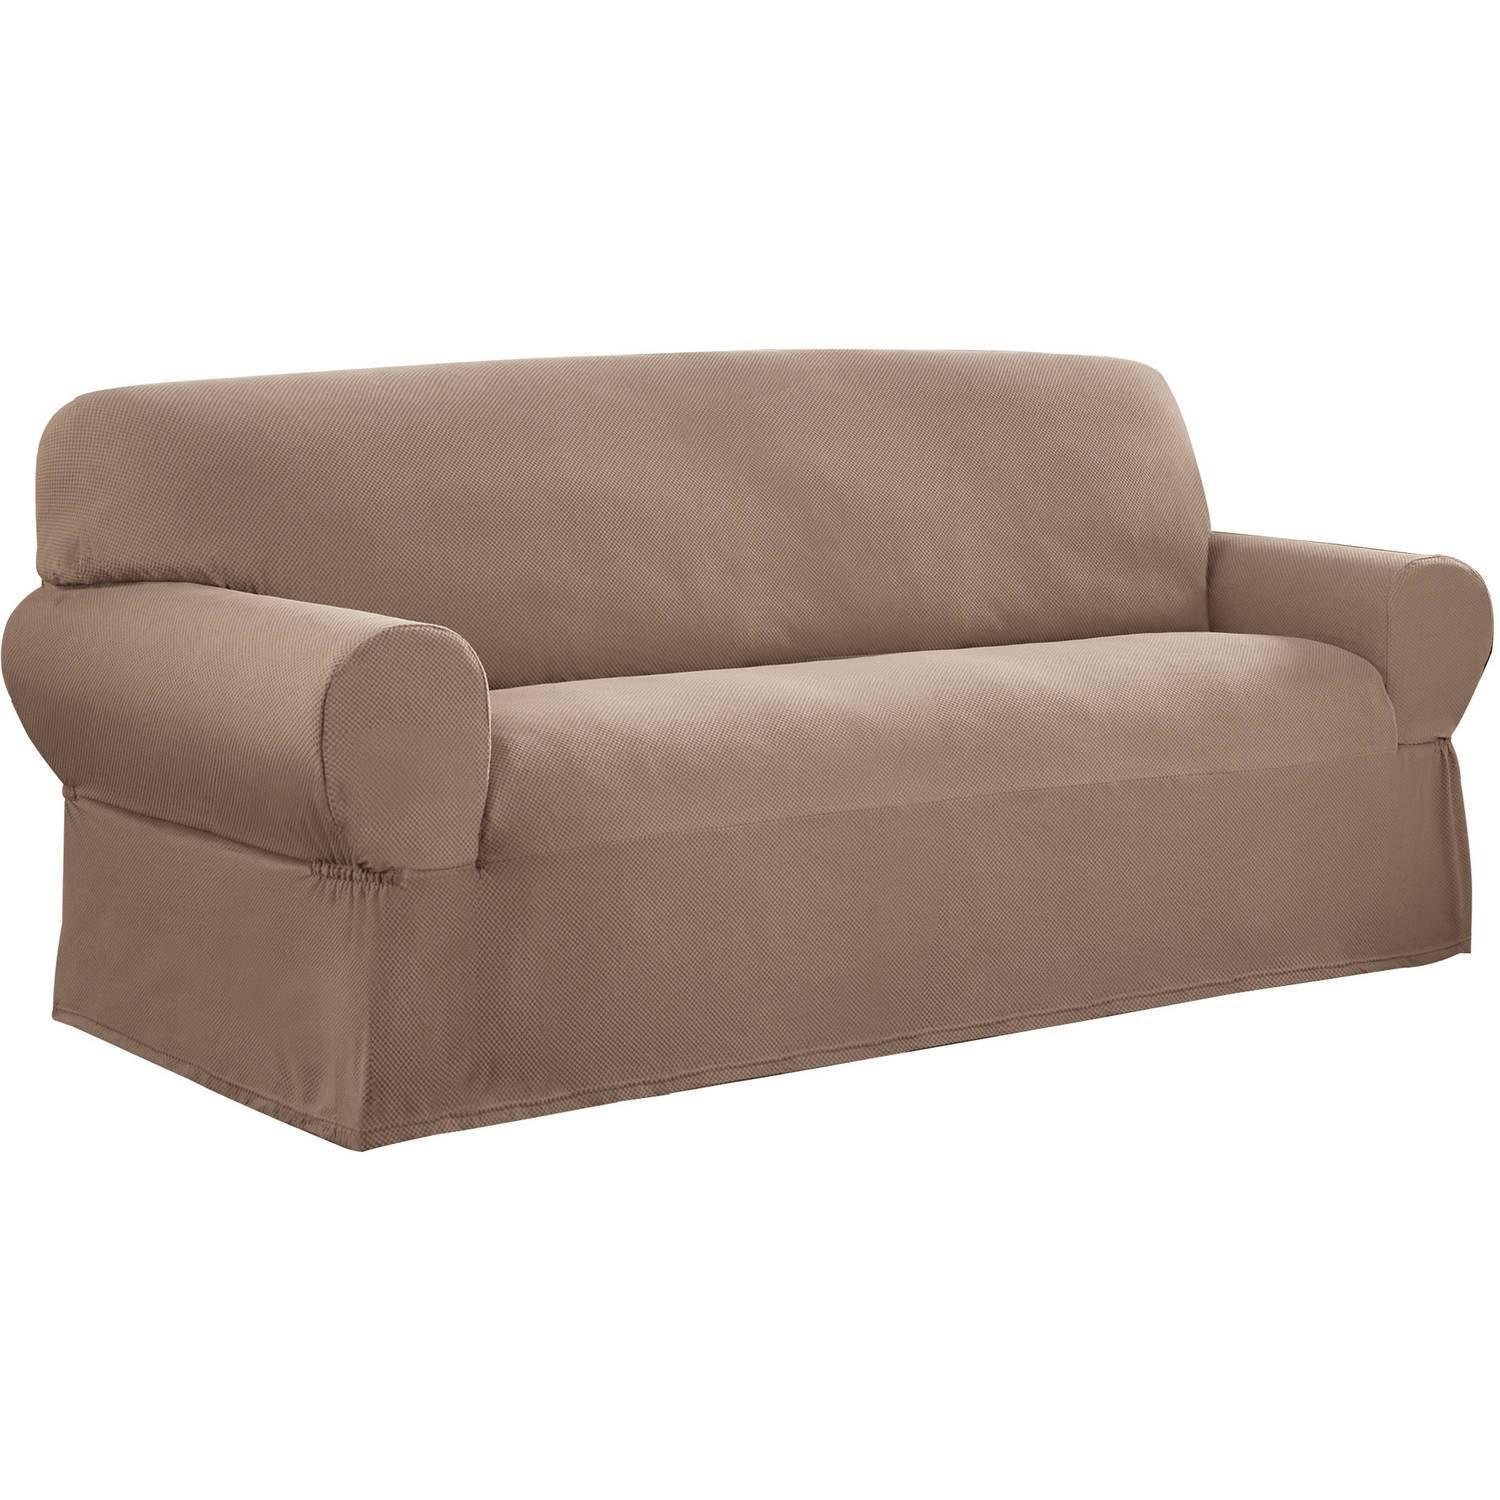 Mainstays 1-Piece Stretch Fabric Sofa Slipcover - Walmart intended for Sleeper Sofa Slipcovers (Image 8 of 15)